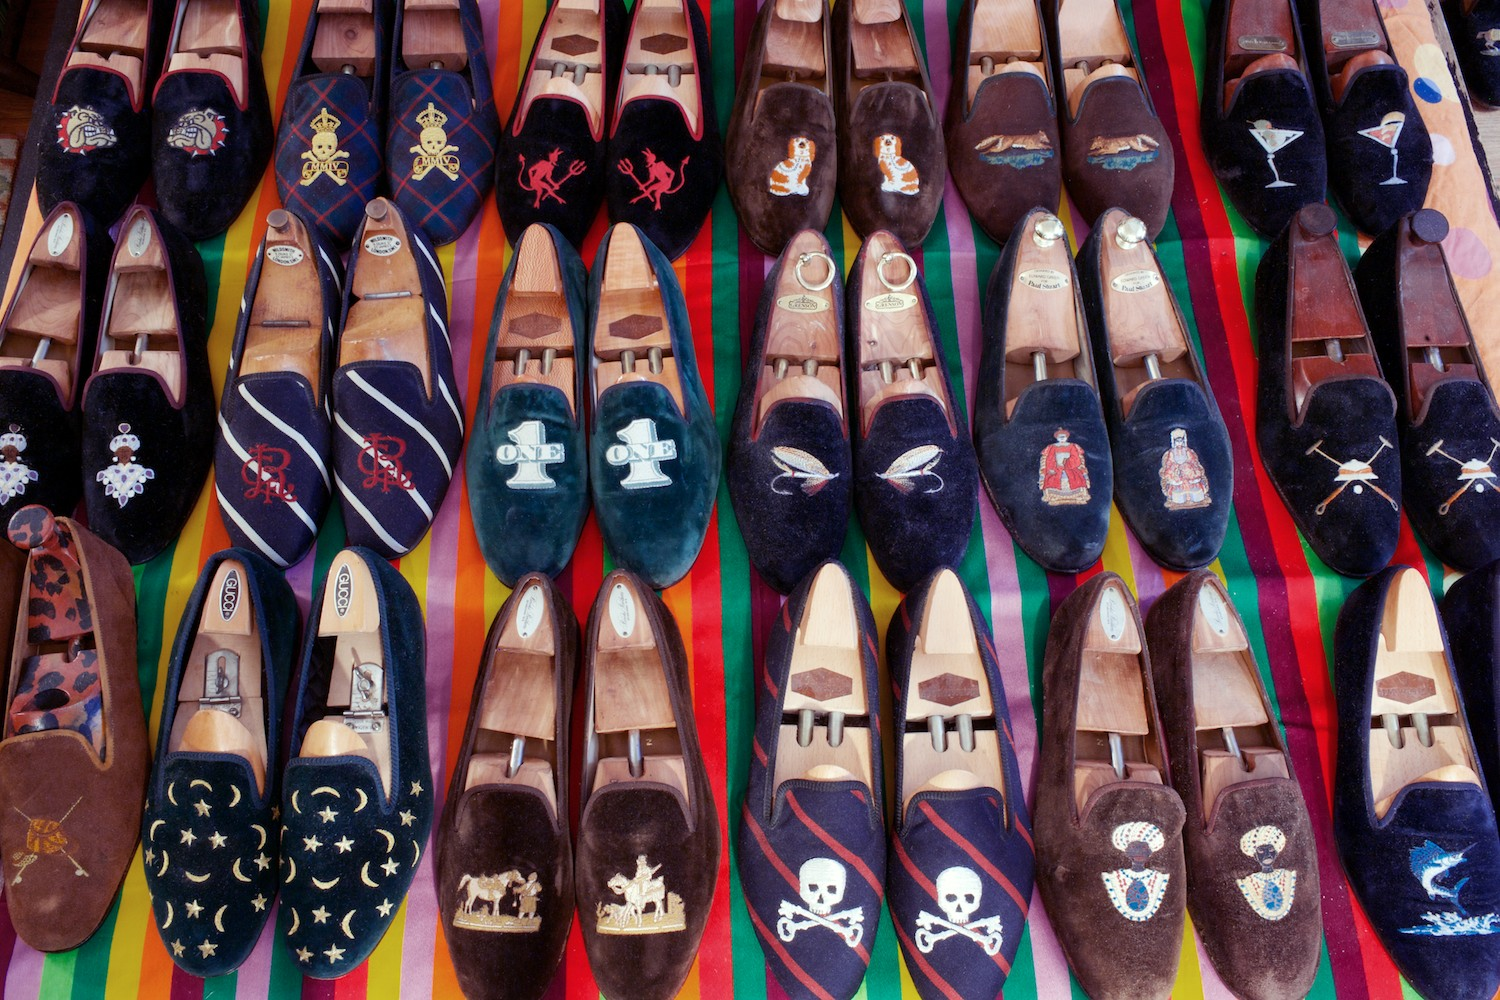 Cary's Prince Albert velvet slipper collection rivals his books.